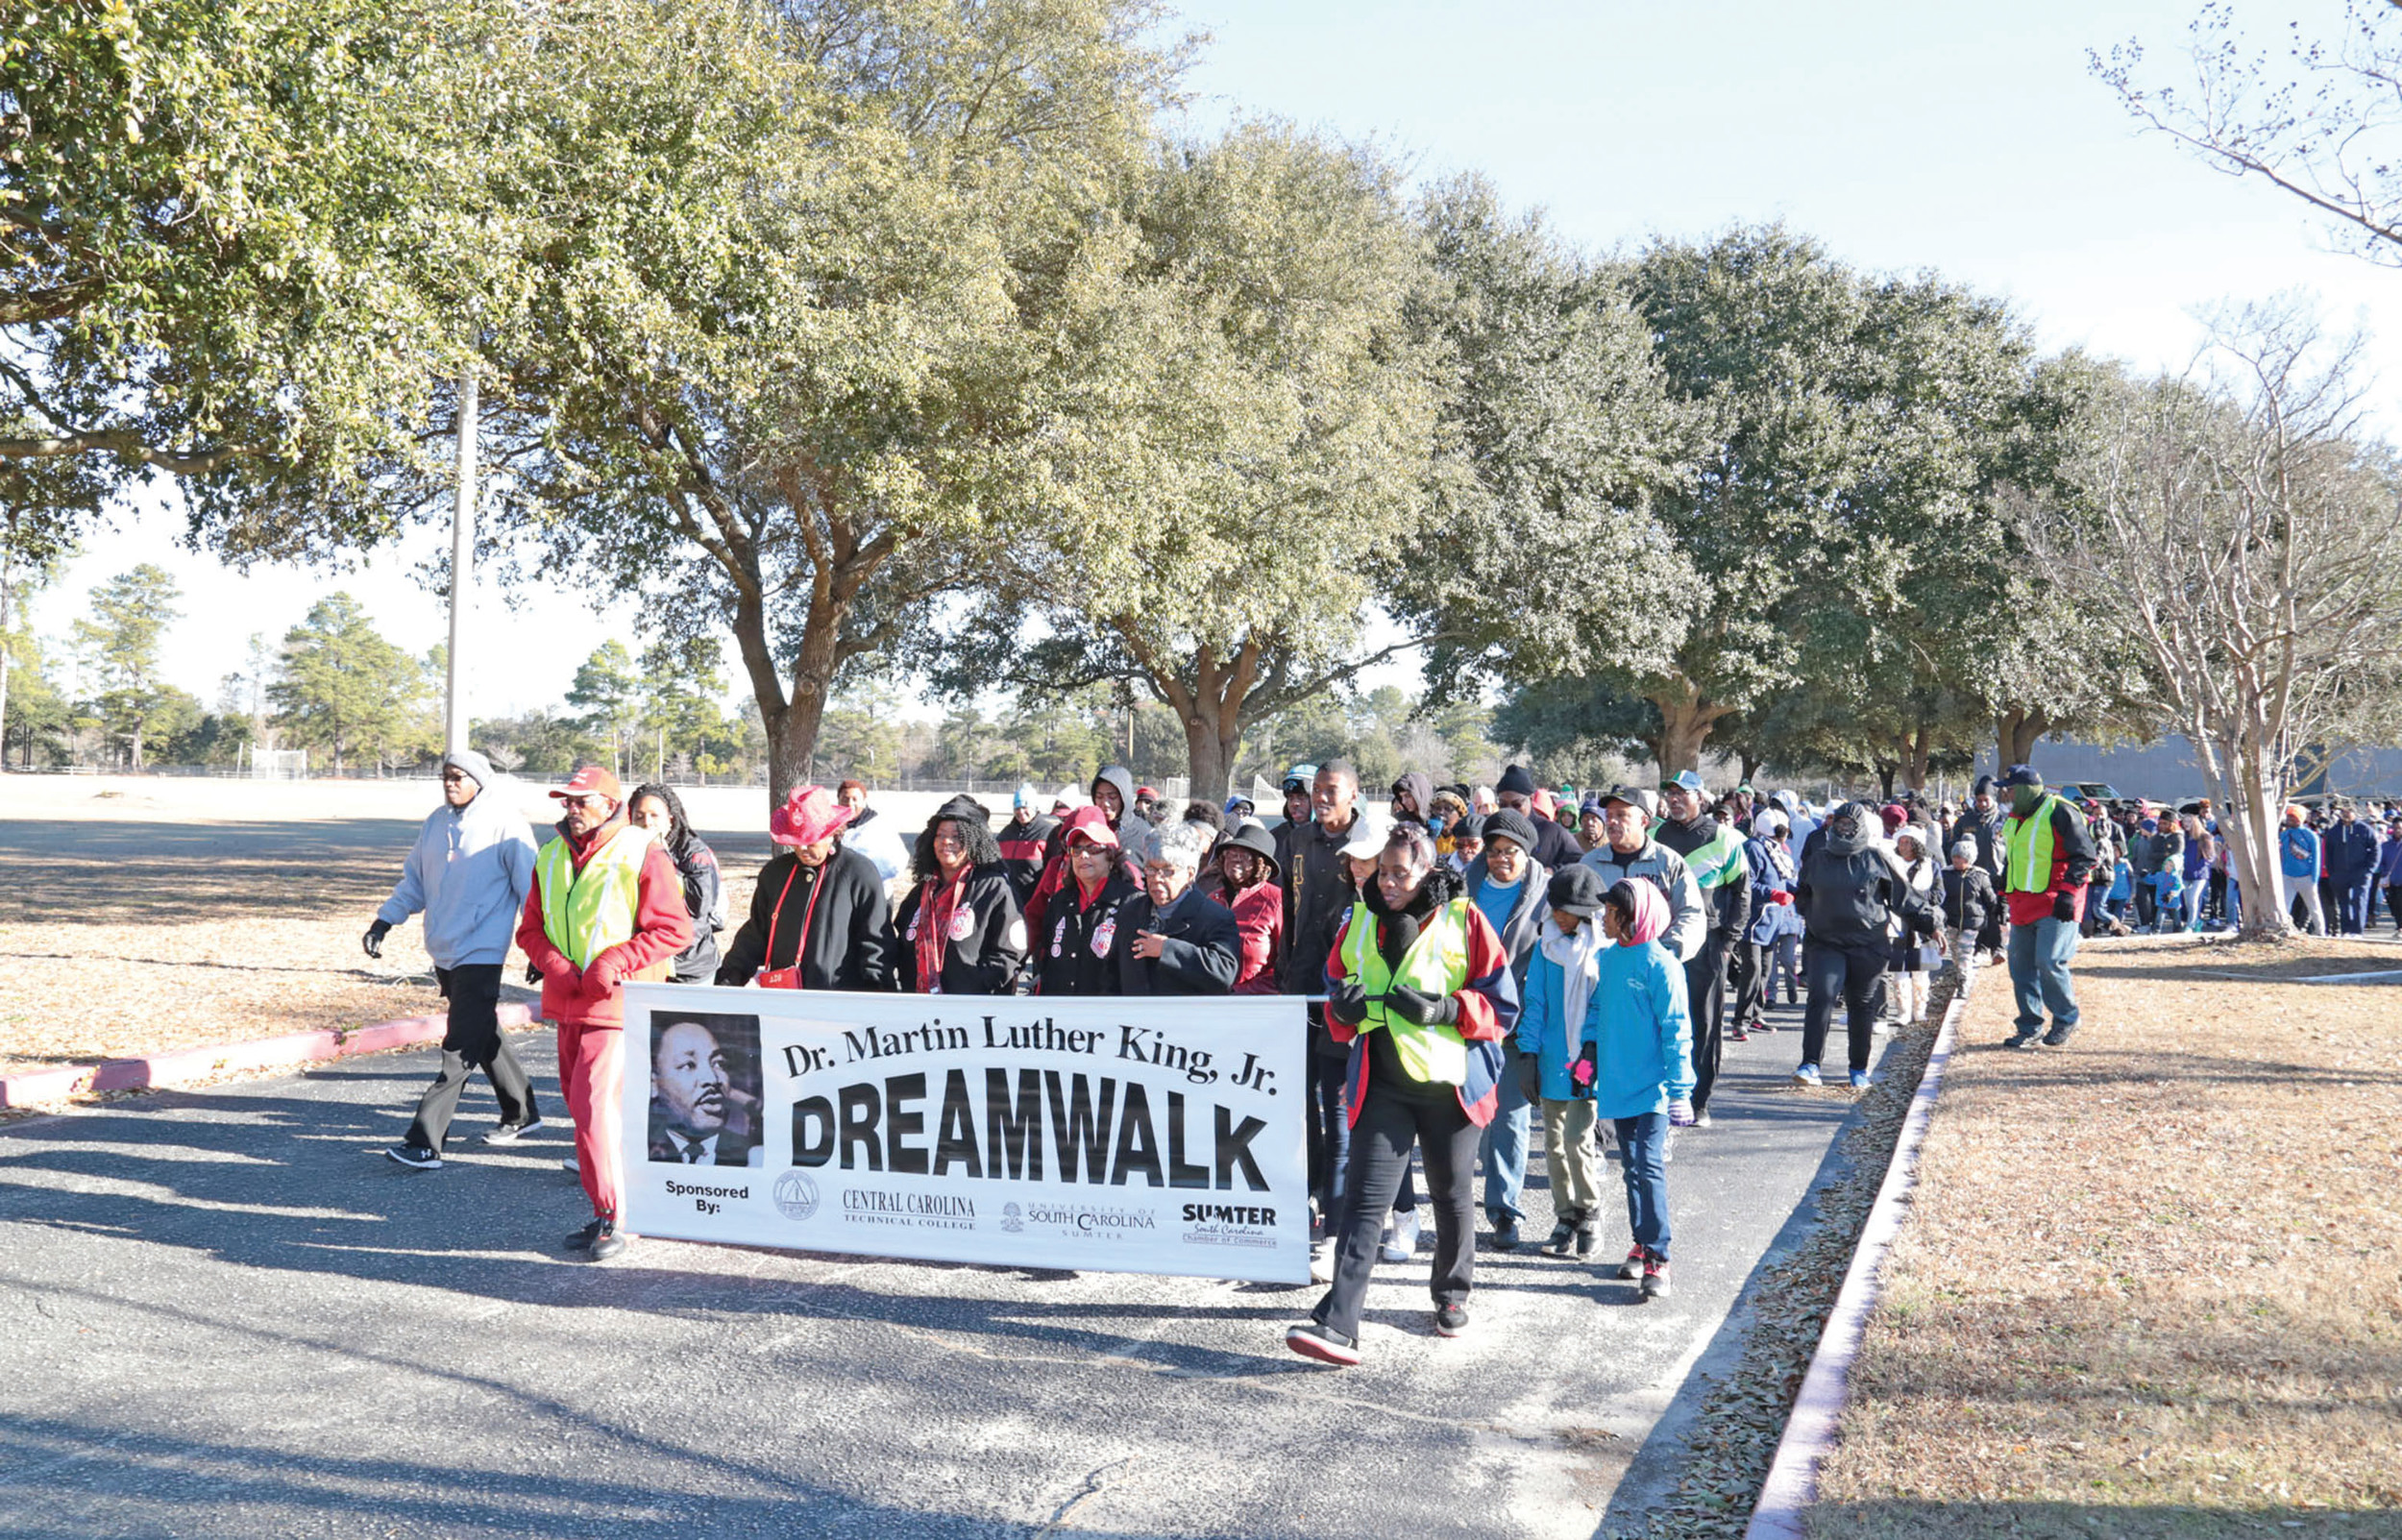 Attendees lead the 18th Annual Dr. Martin Luther King Jr. Dream Walk at University of South Carolina Sumter on Monday morning. More than 400 people participated in the event, according to college officials.